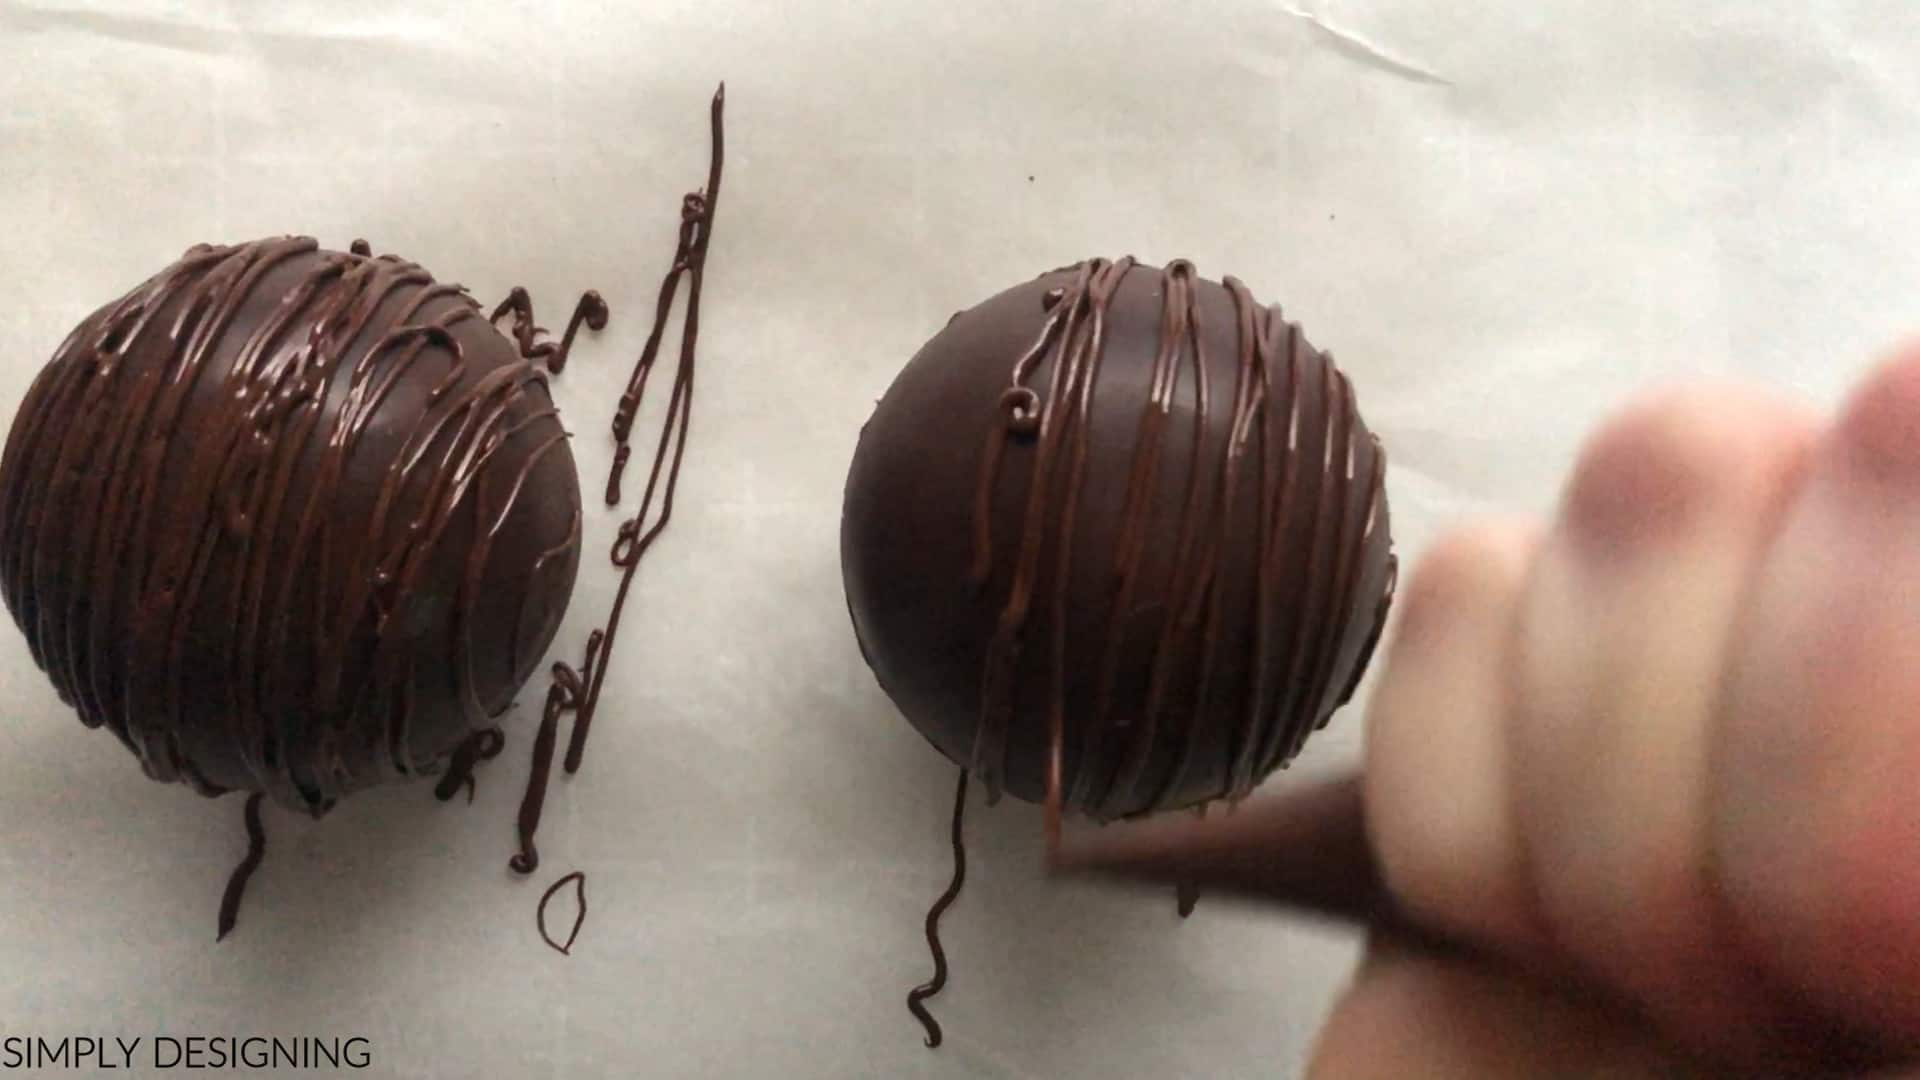 decorate with melted chocolate